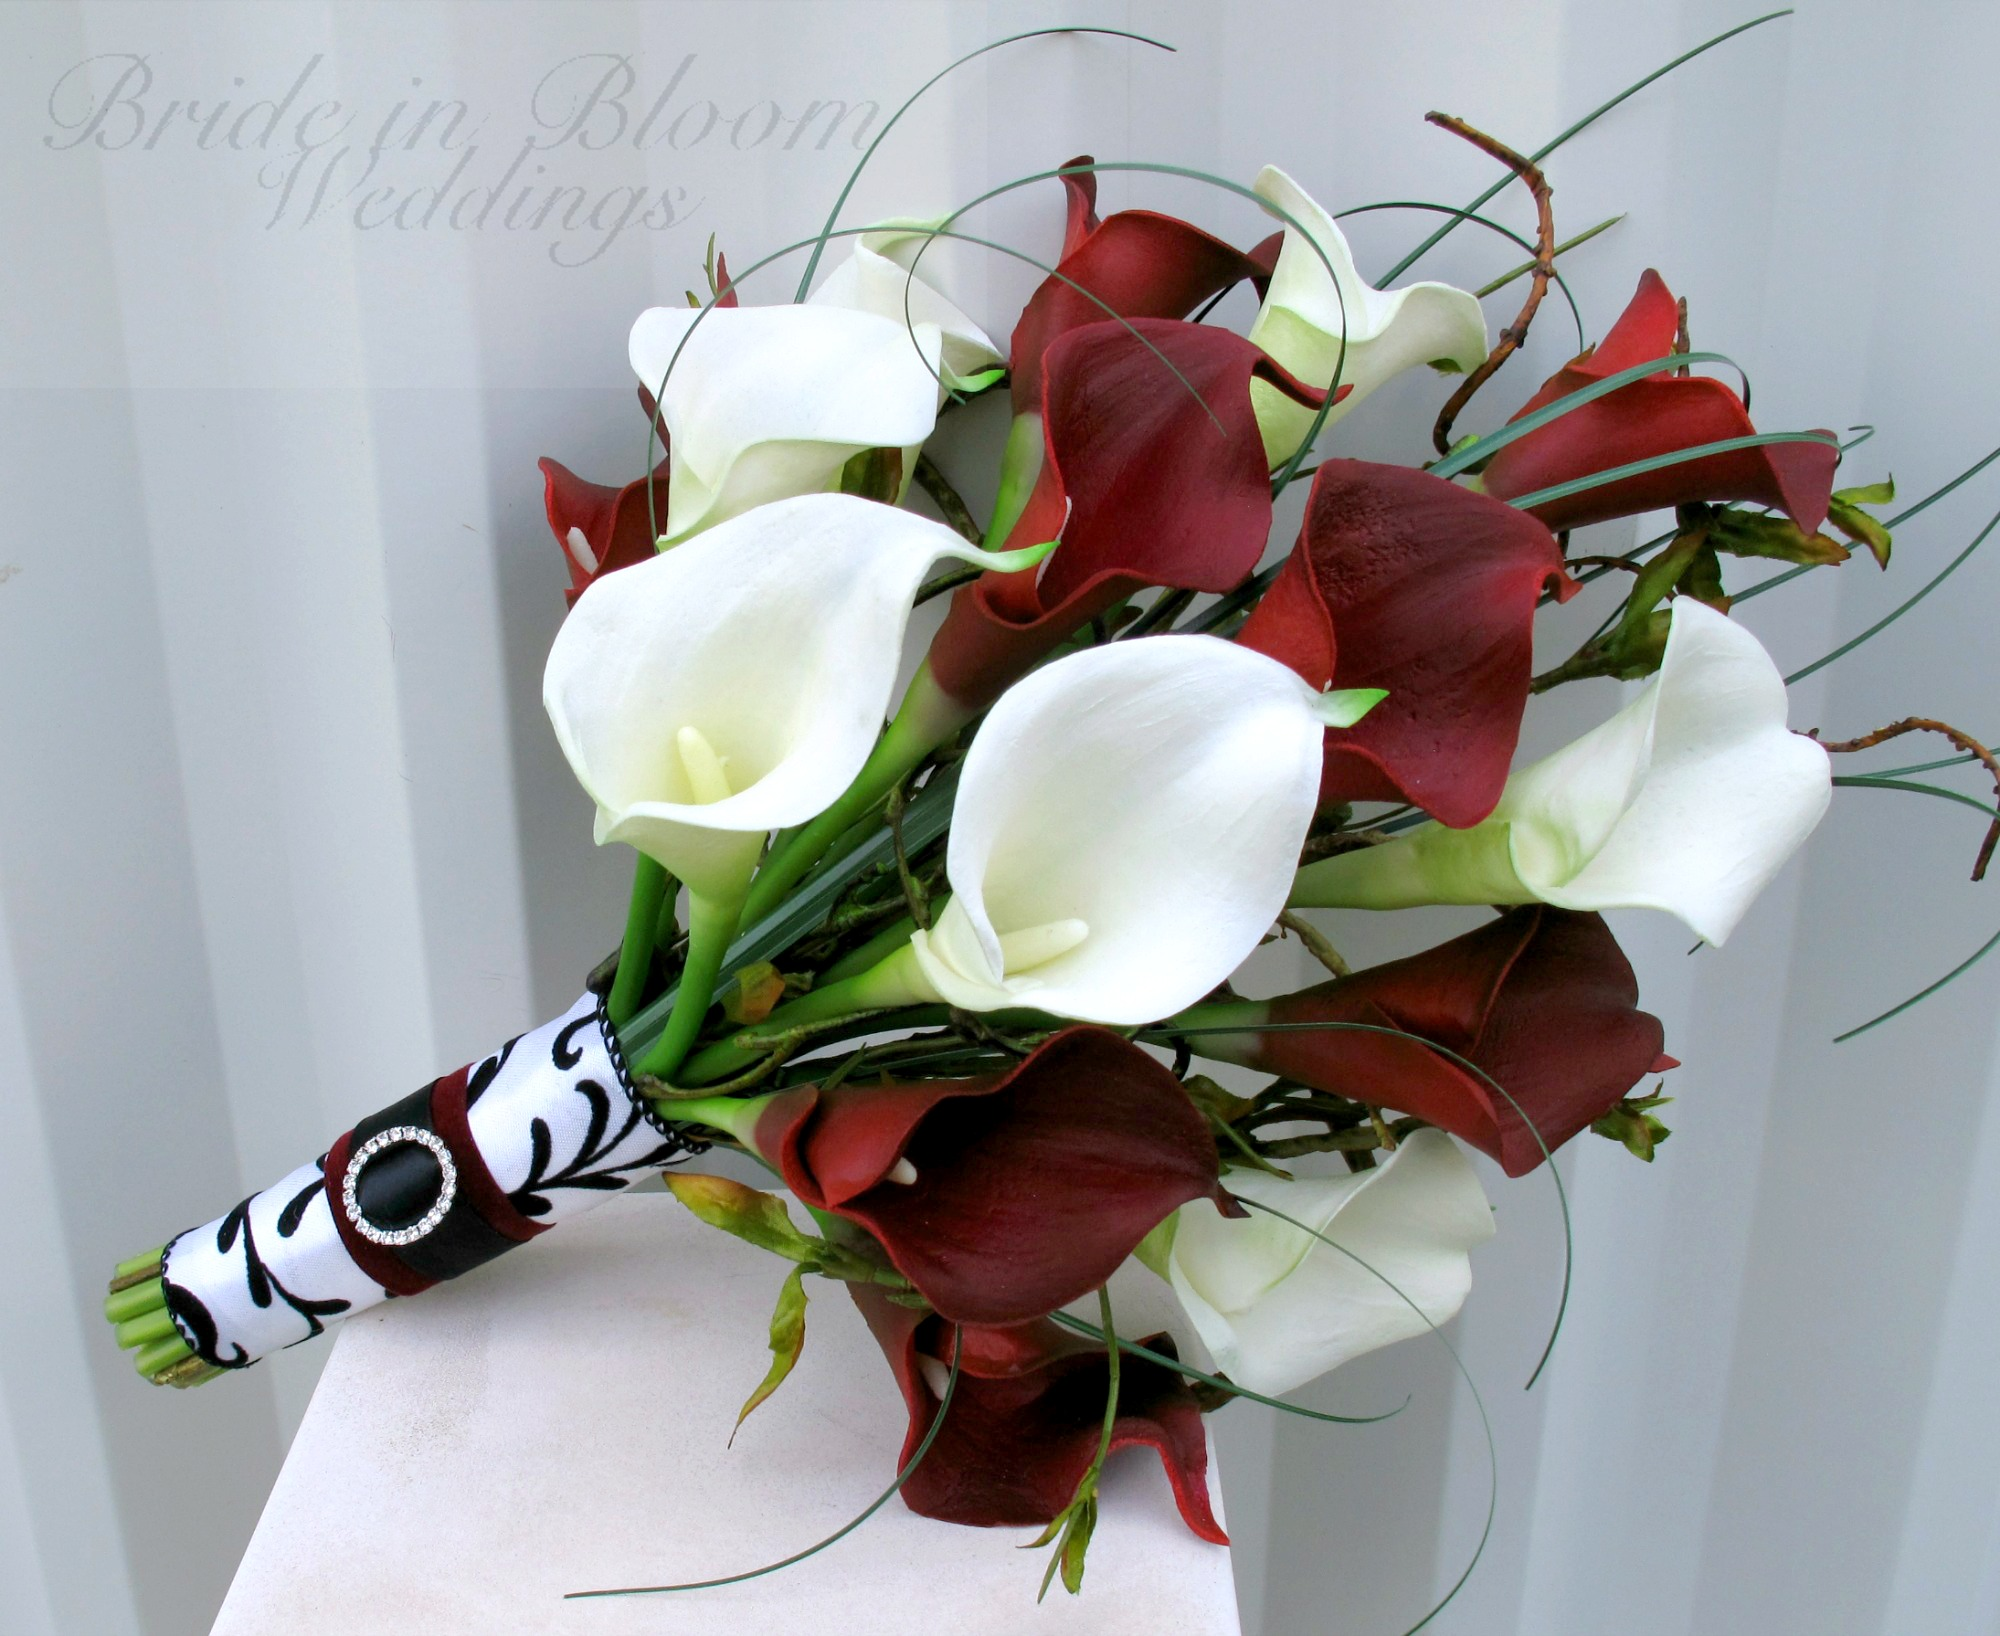 Red & white calla lily wedding bouquet | Bride in Bloom